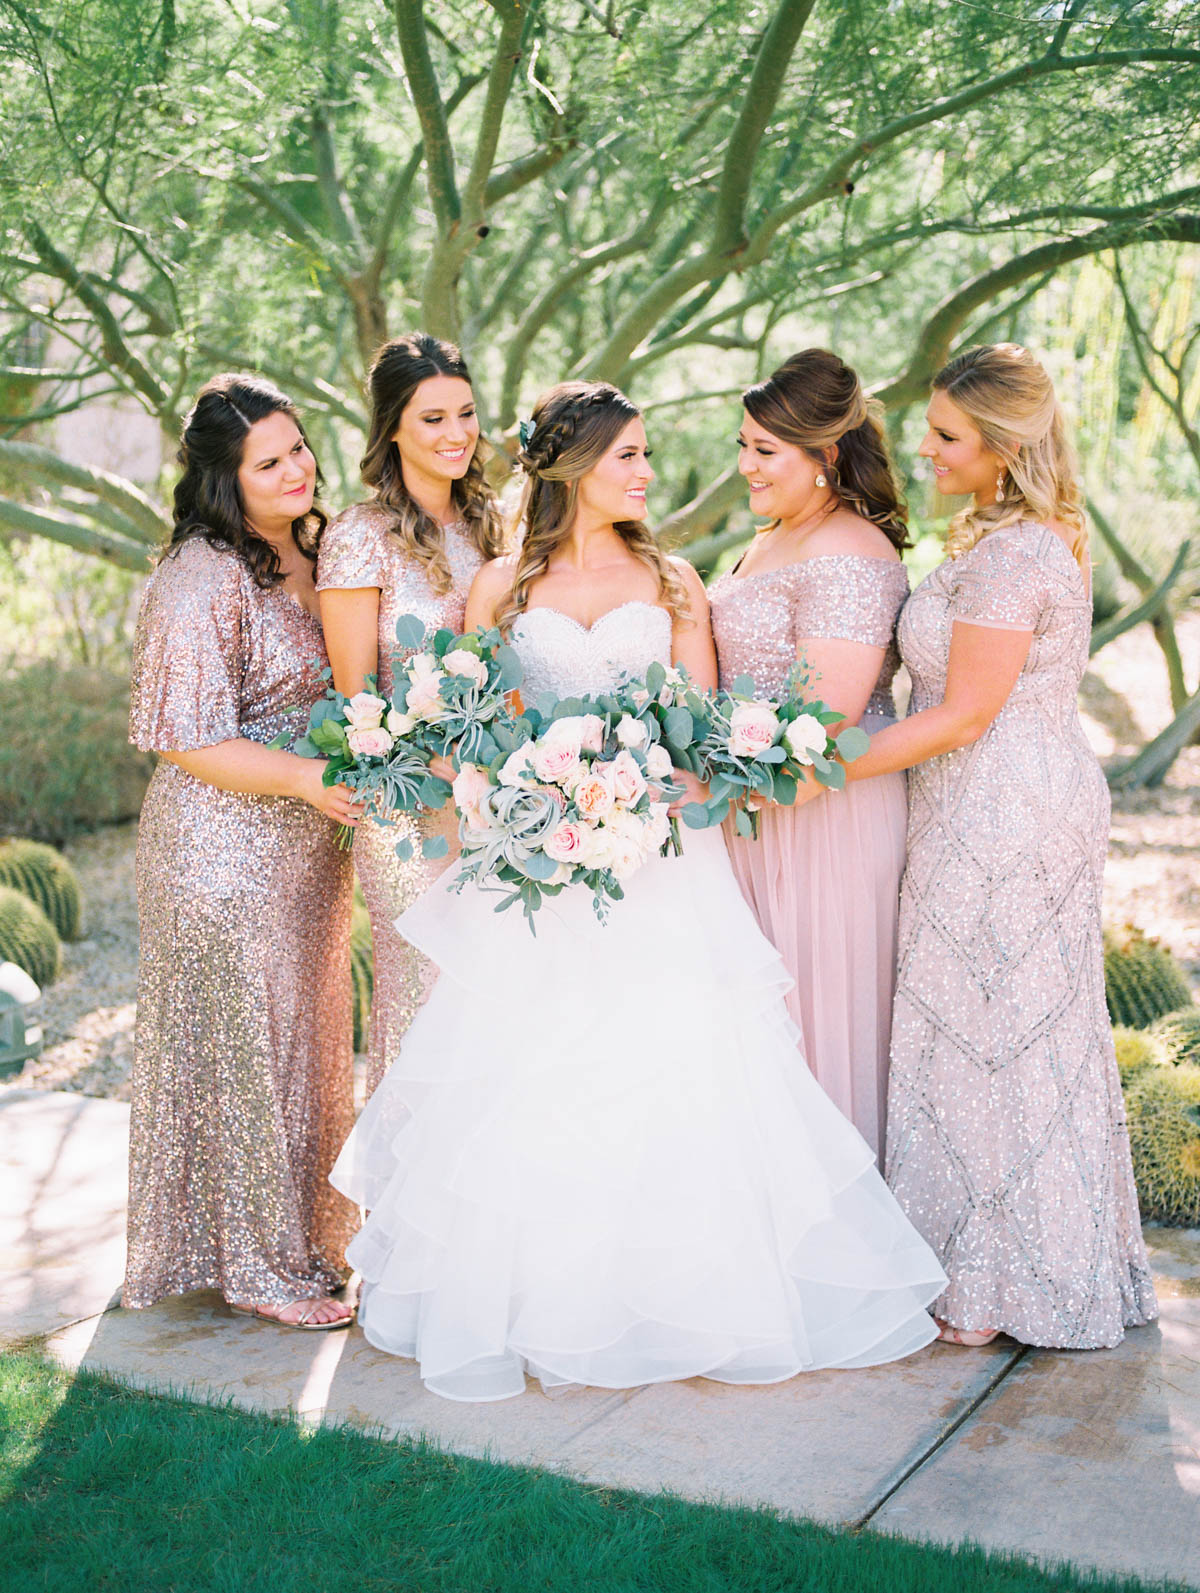 Sparkling blush bridesmaids captured by Tucson Wedding Photographers Betsy & John